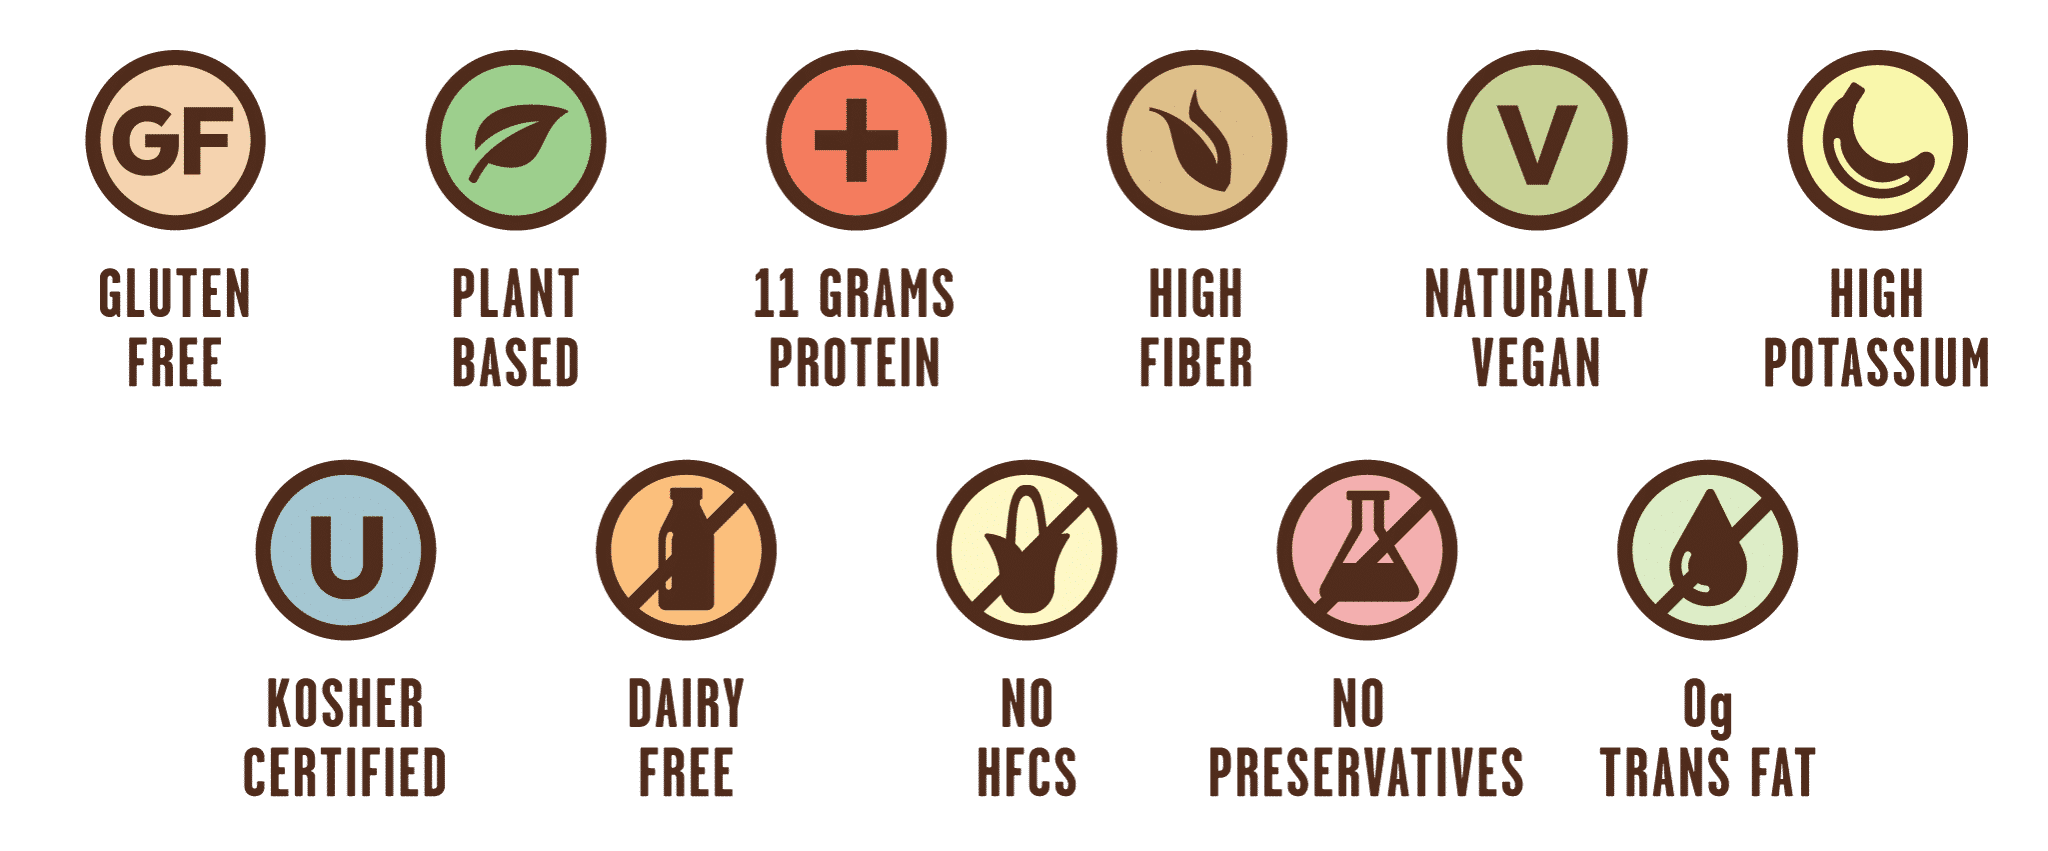 Grab The Gold Nutrition Icons 01.18